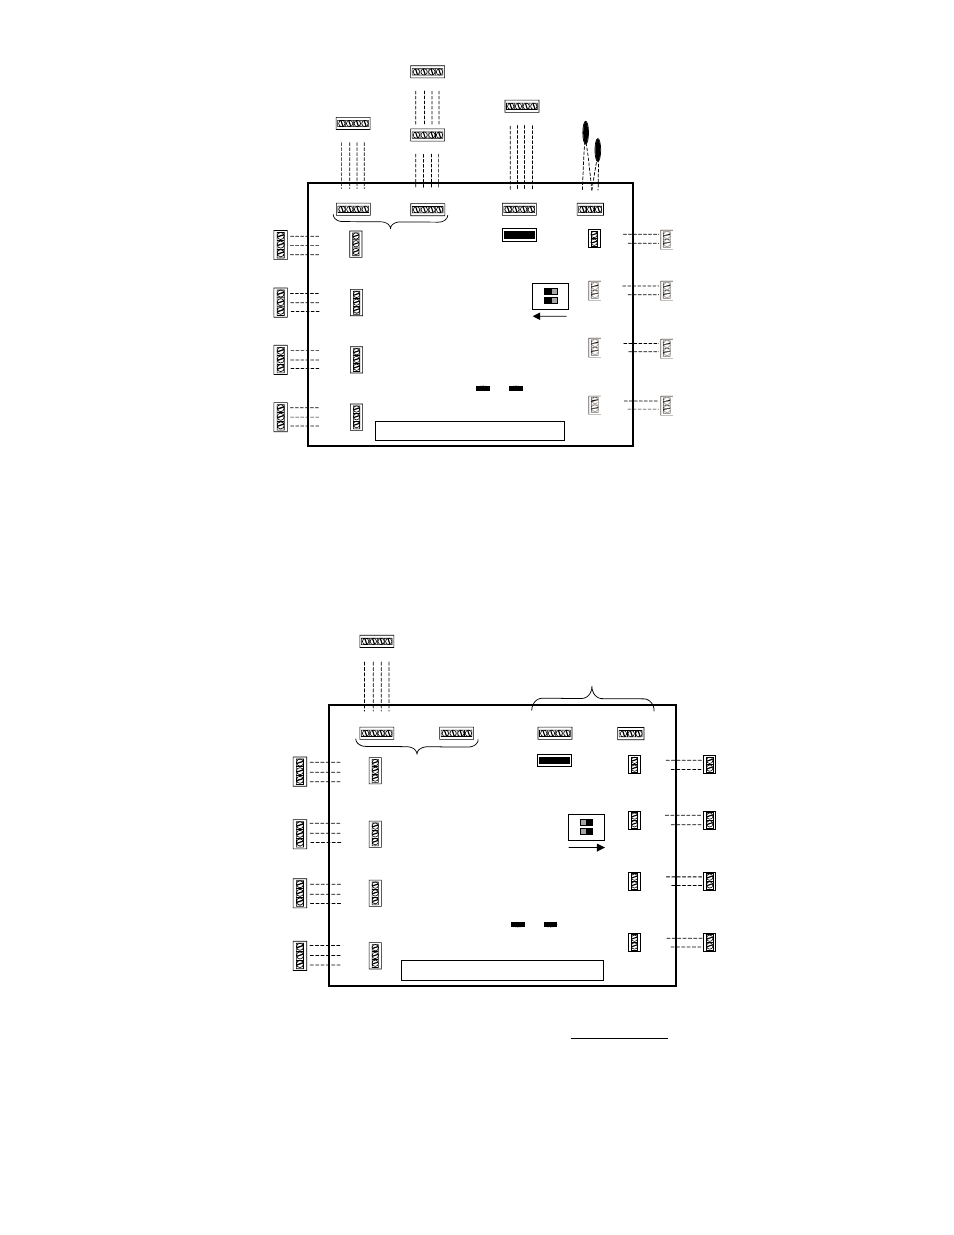 Zones 5 - 8  Zoning System Wiring Diagram  Zones 1